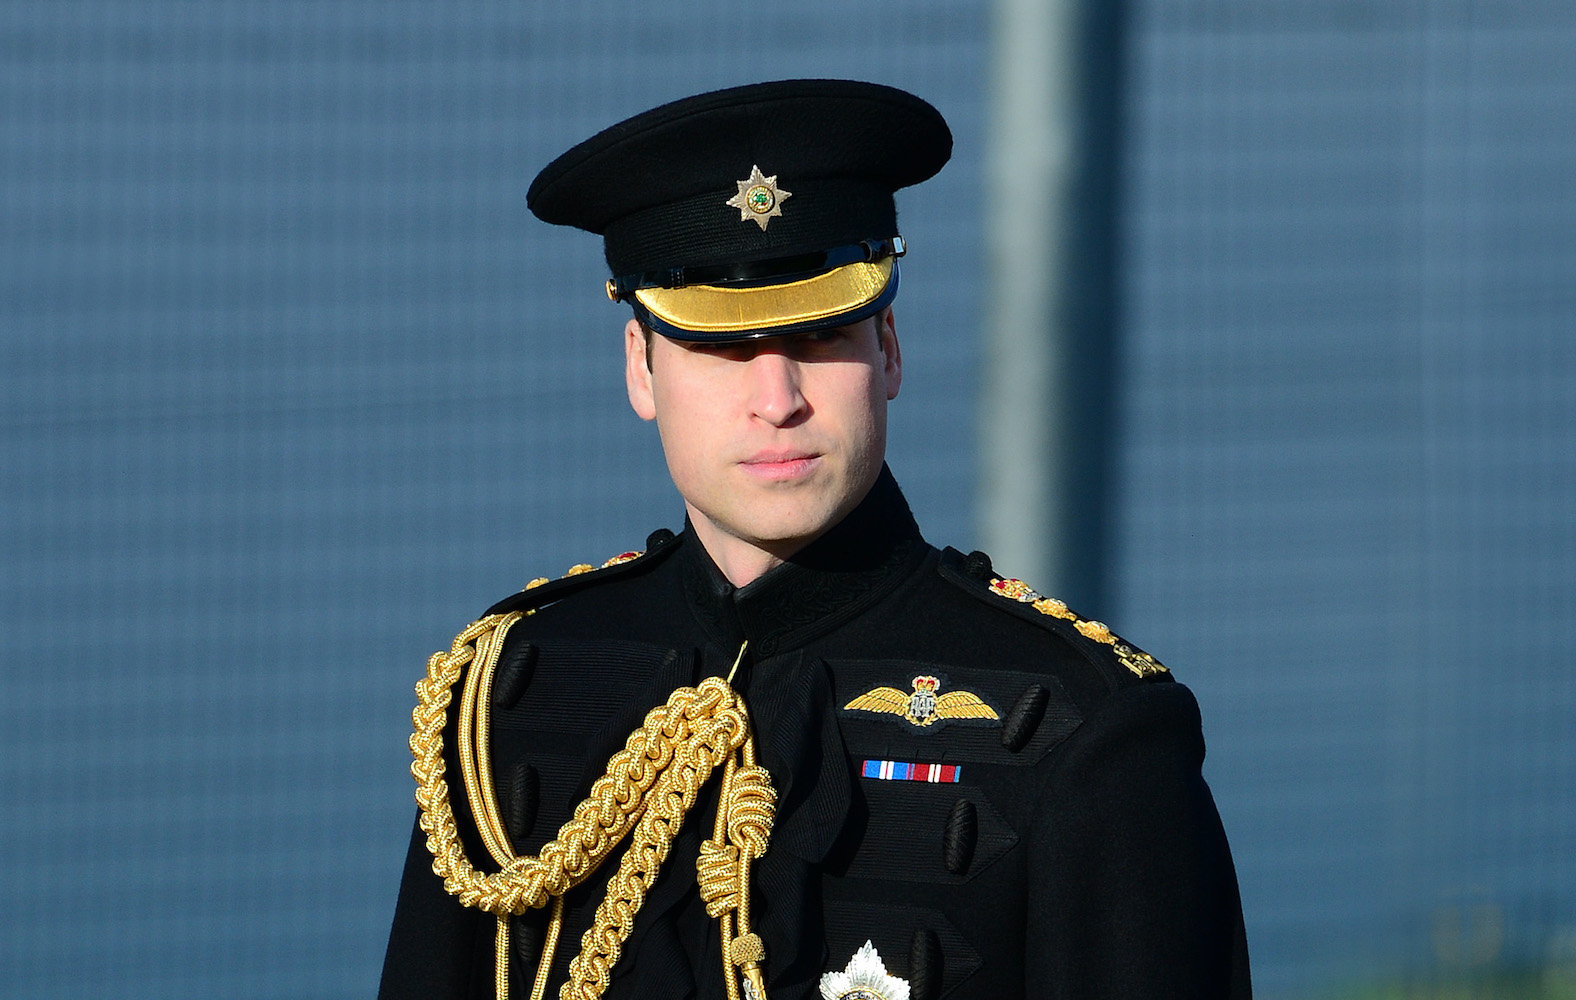 Prince William 'wants to return as air ambulance pilot' to fight coronavirus